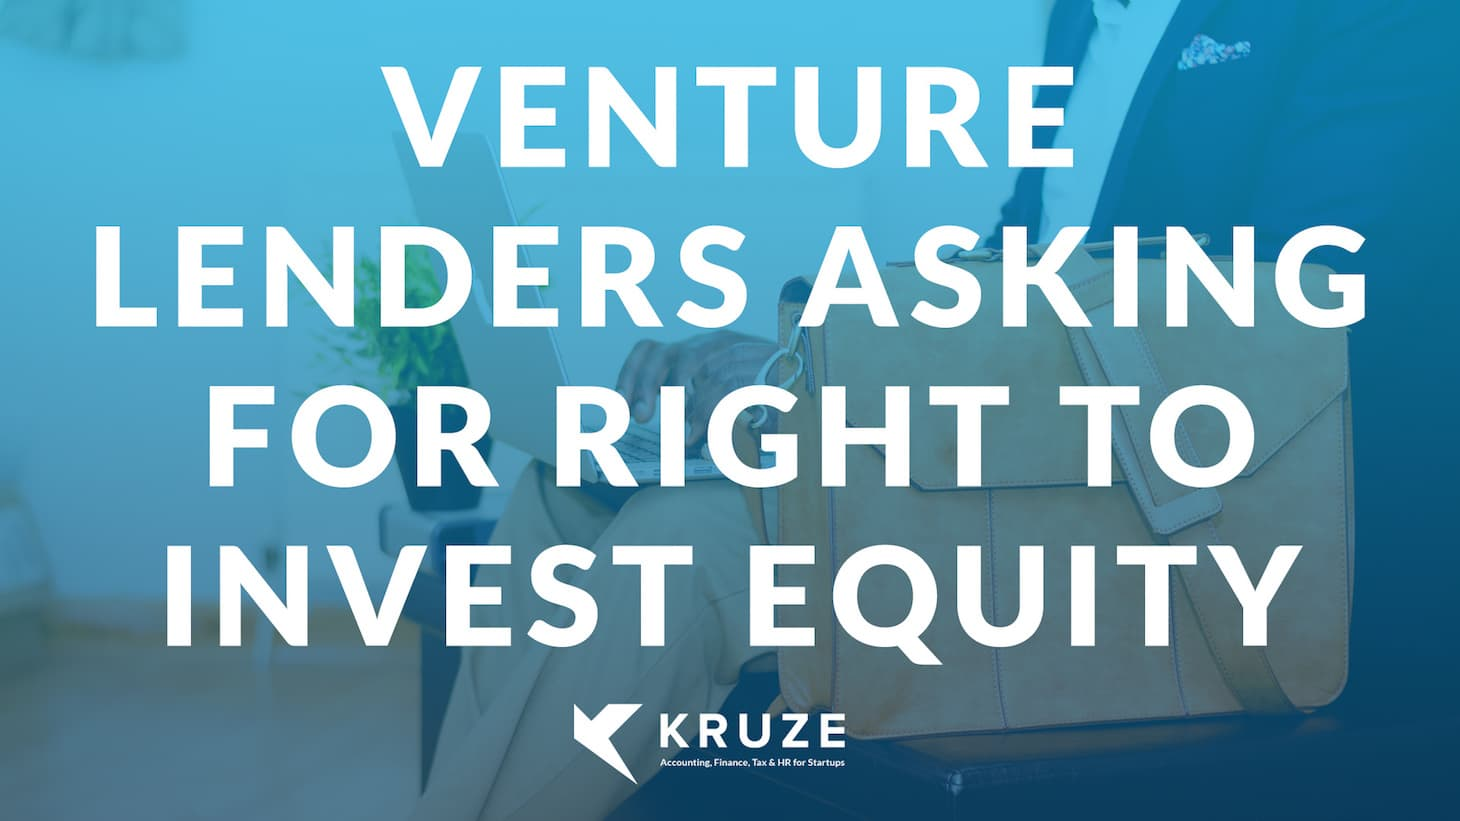 Venture Lenders Asking for Right to Invest Equity